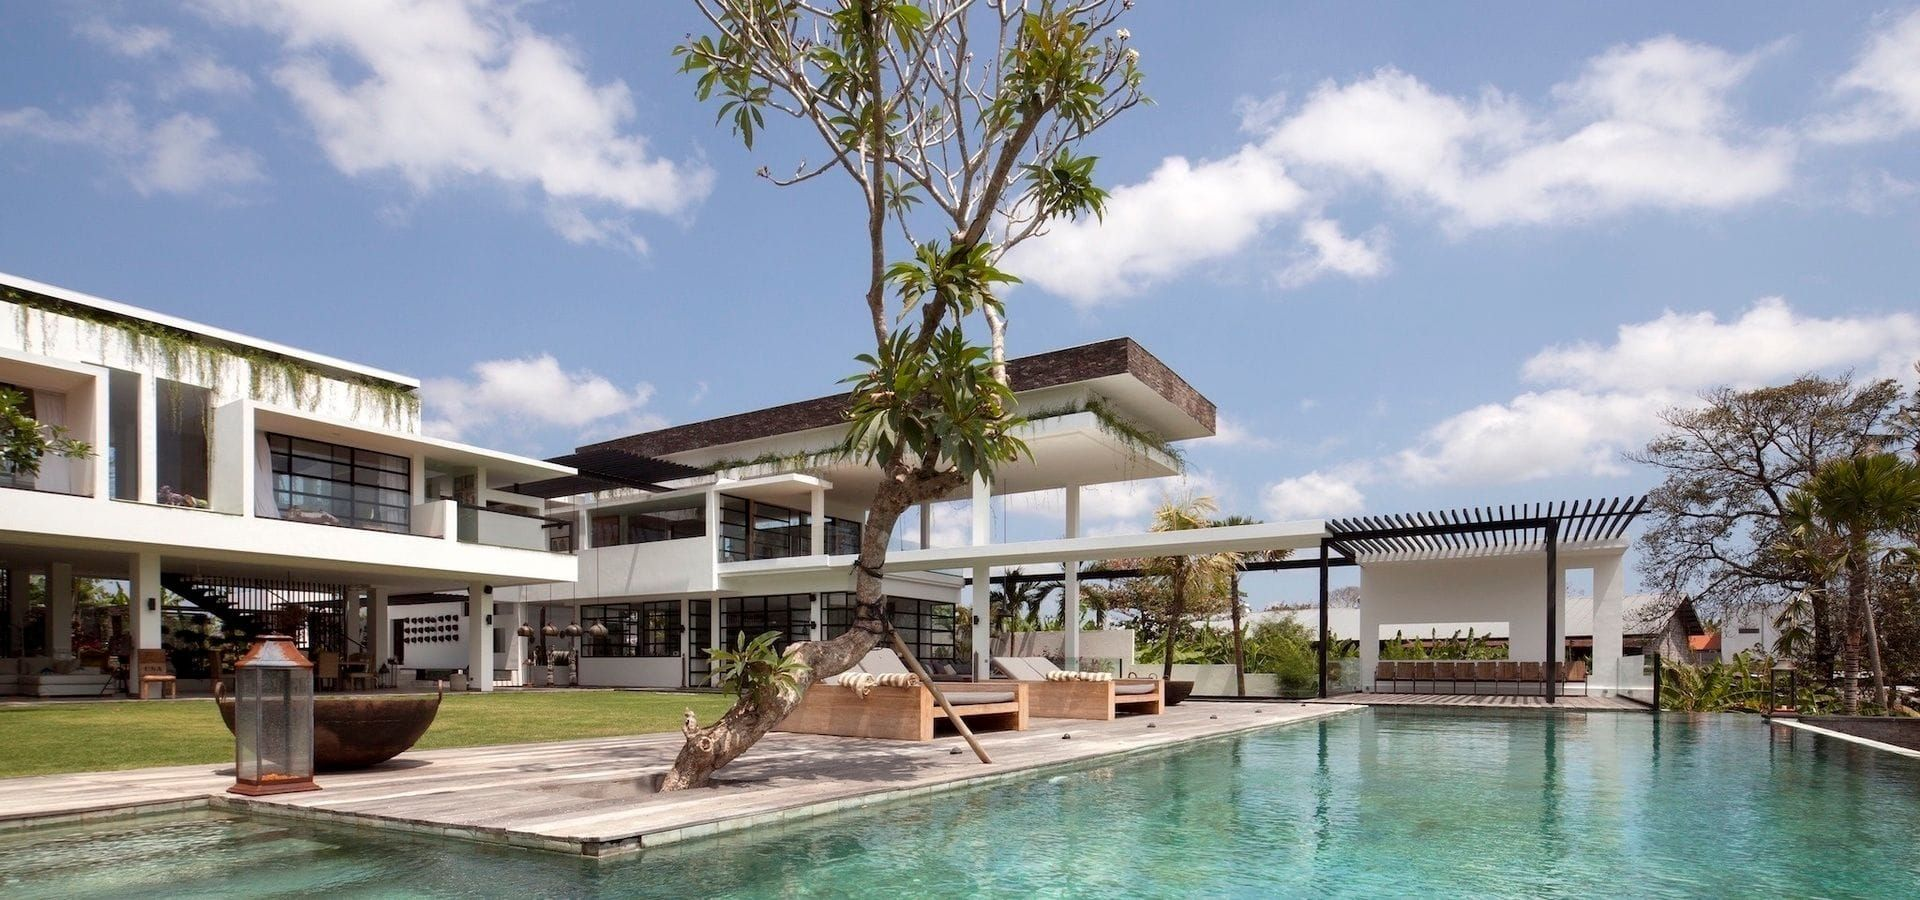 10 Large Luxury Villas To Stay In Bali